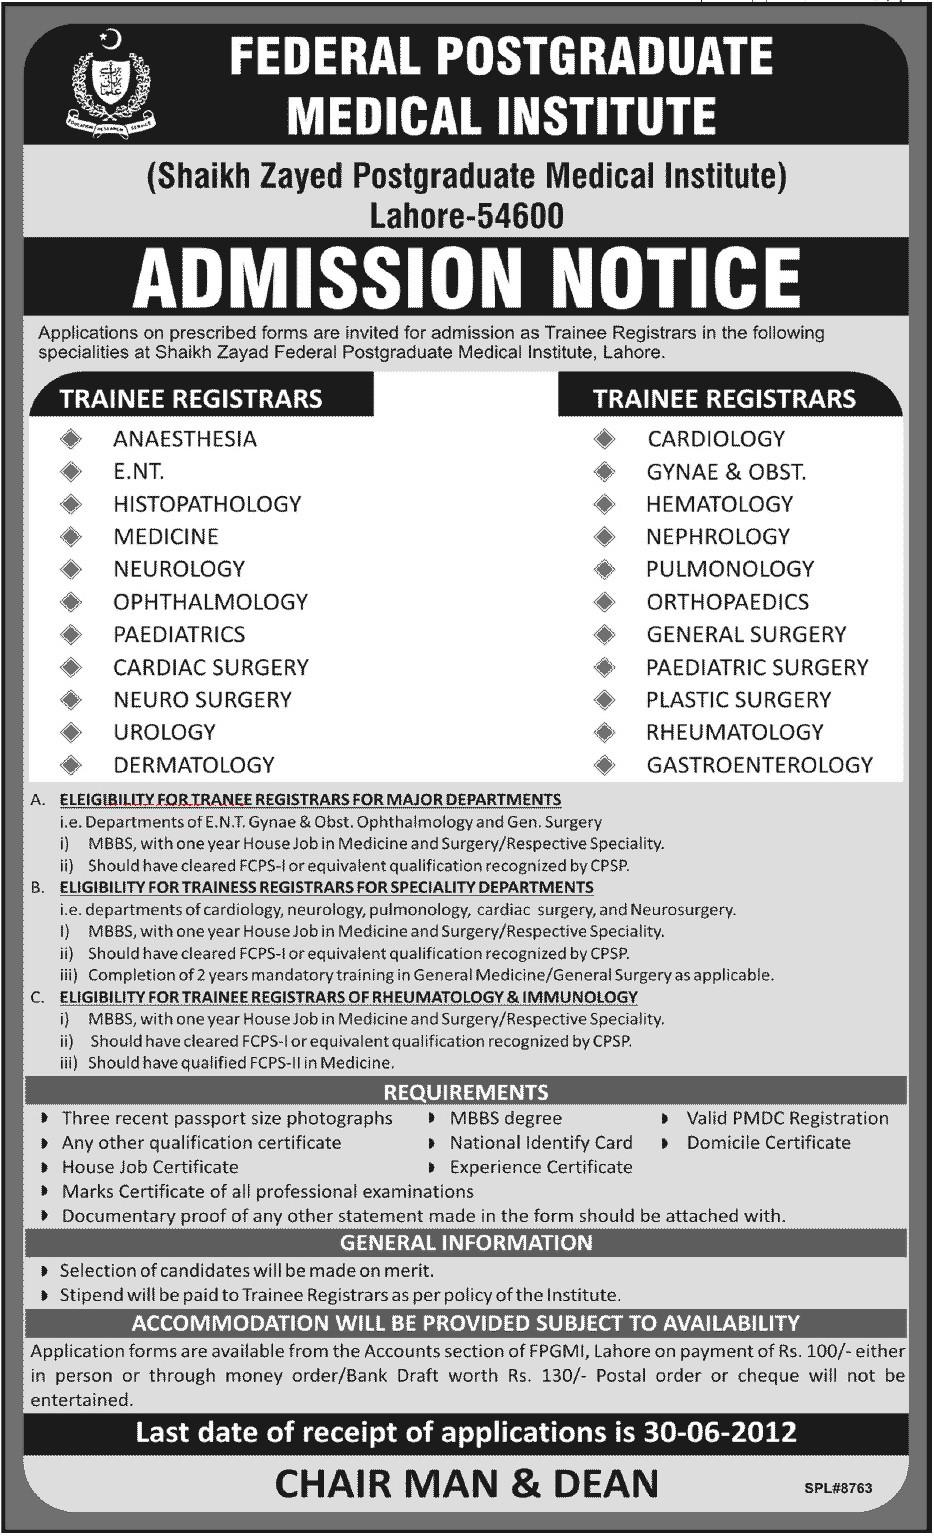 Admissions in Sheikh Zayed Medical Institute